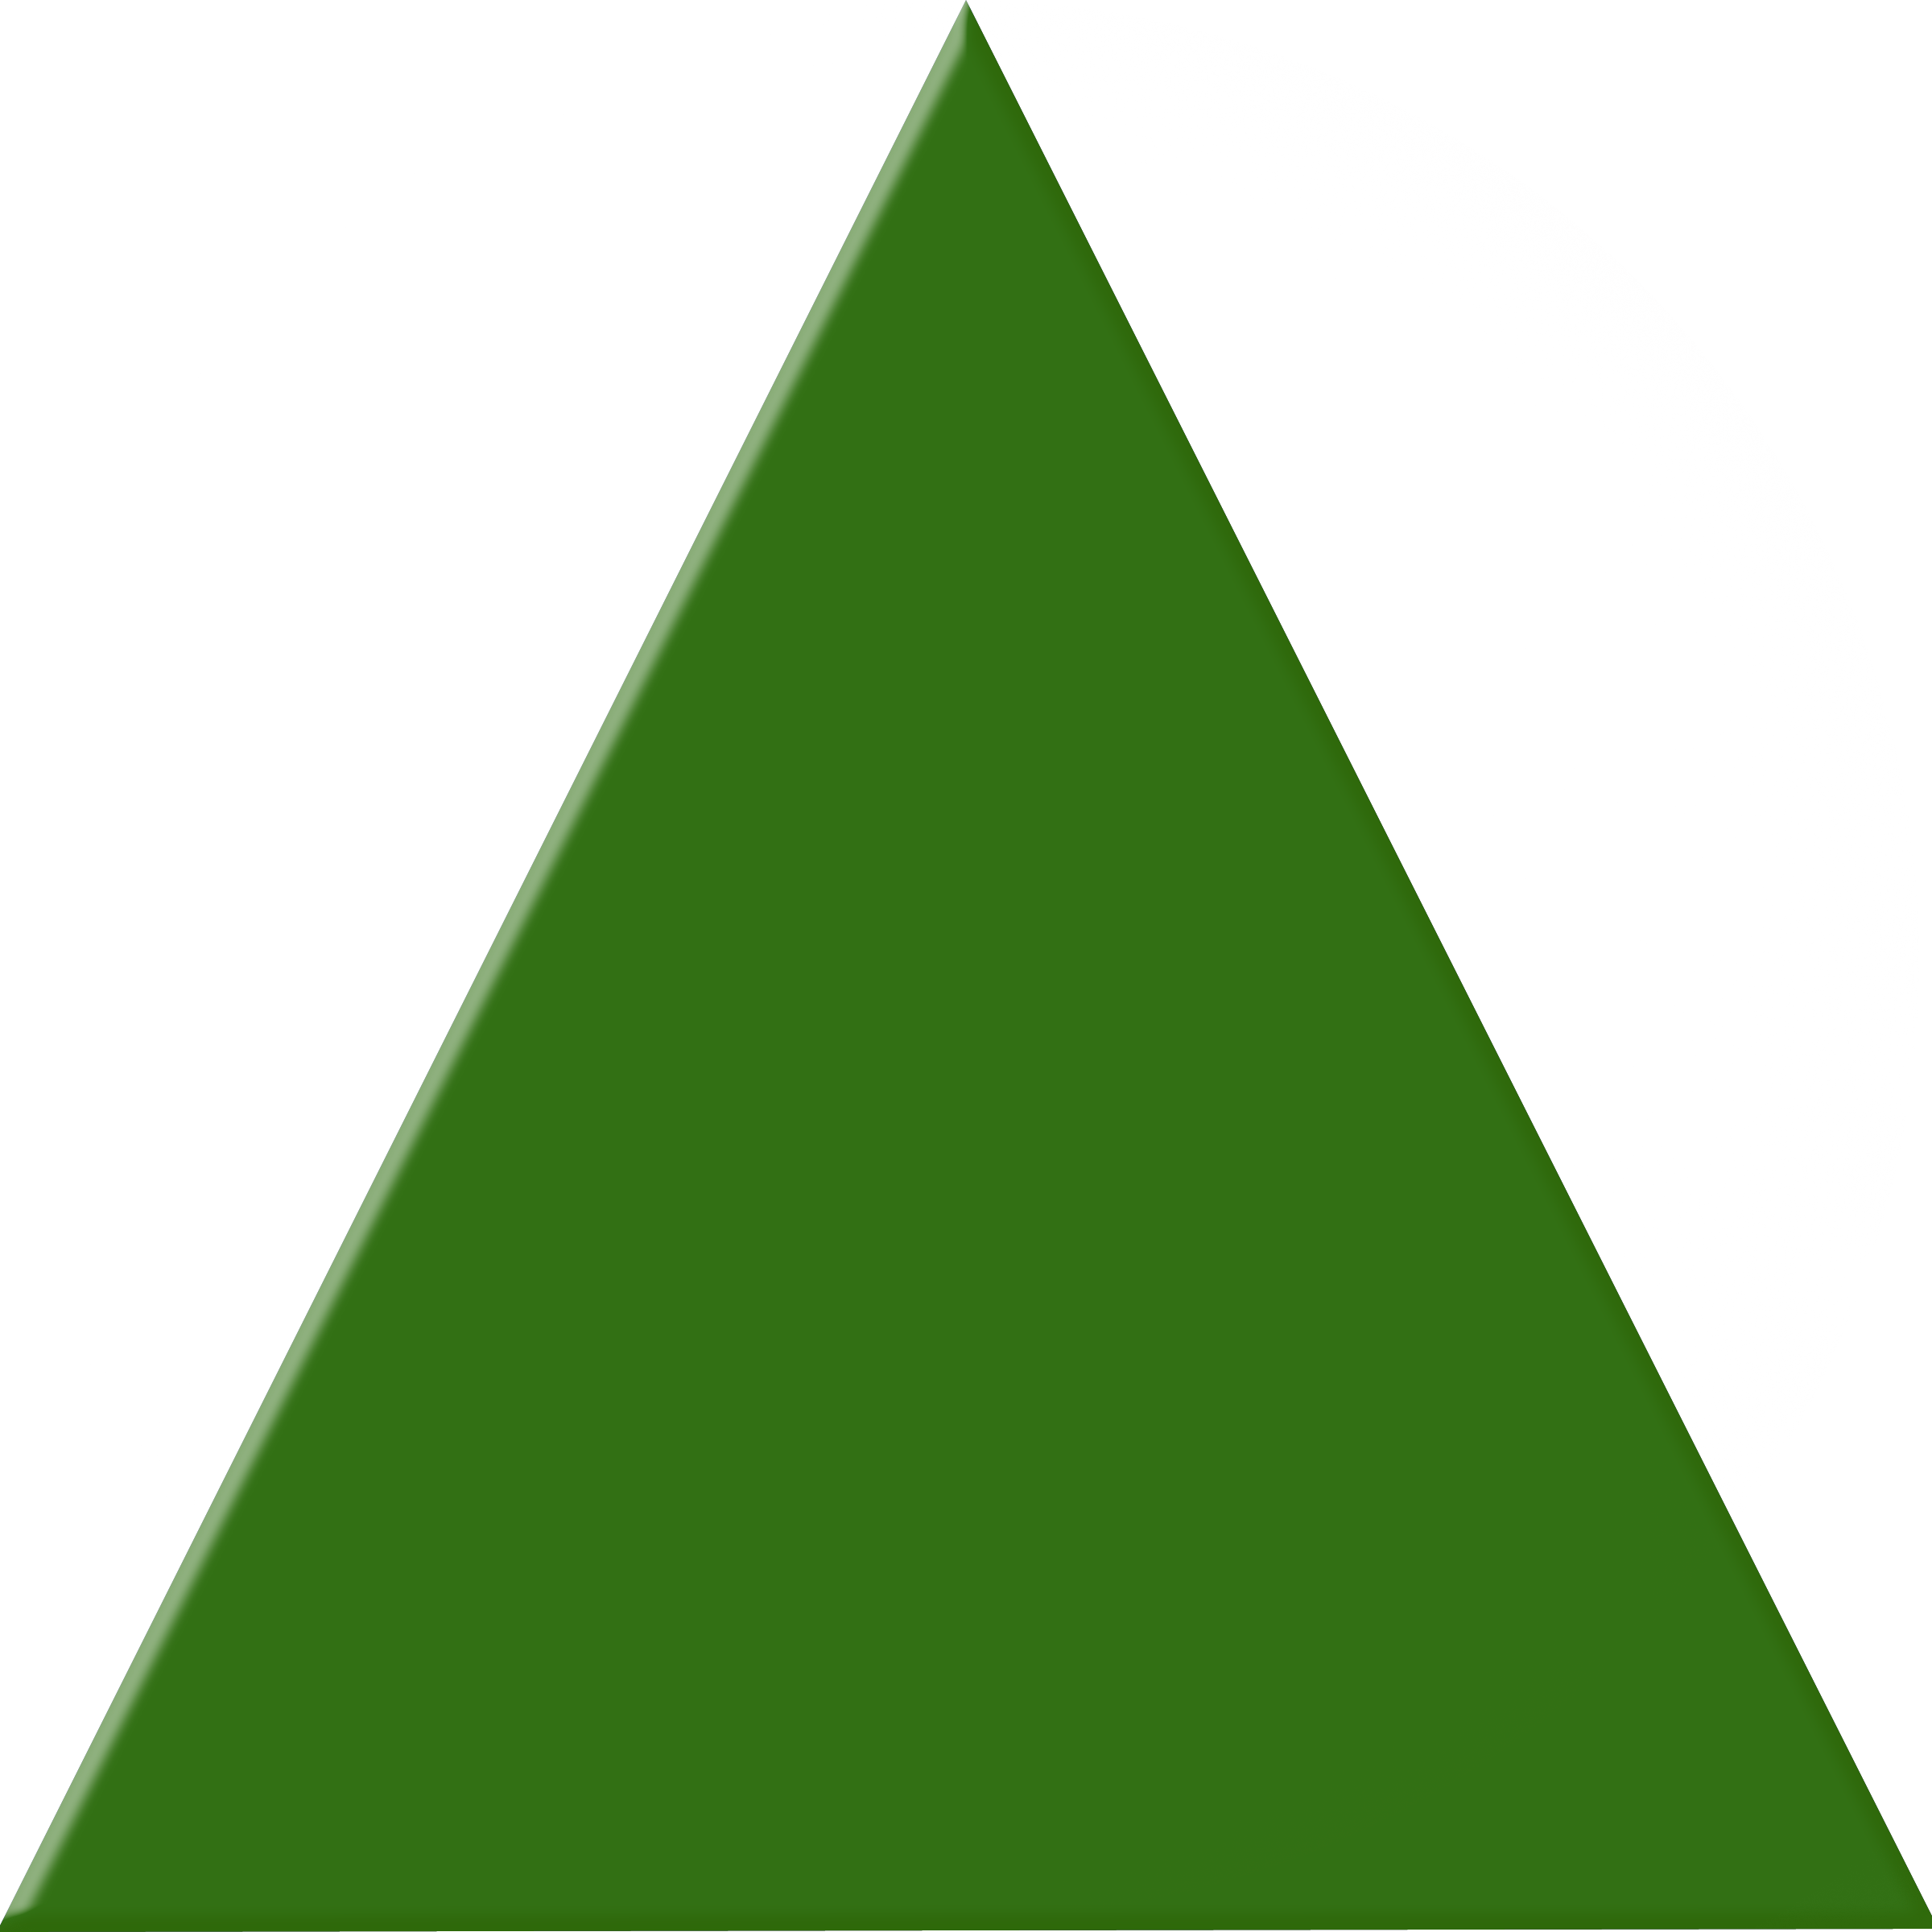 Green triangle free images. Triangular clipart teaching